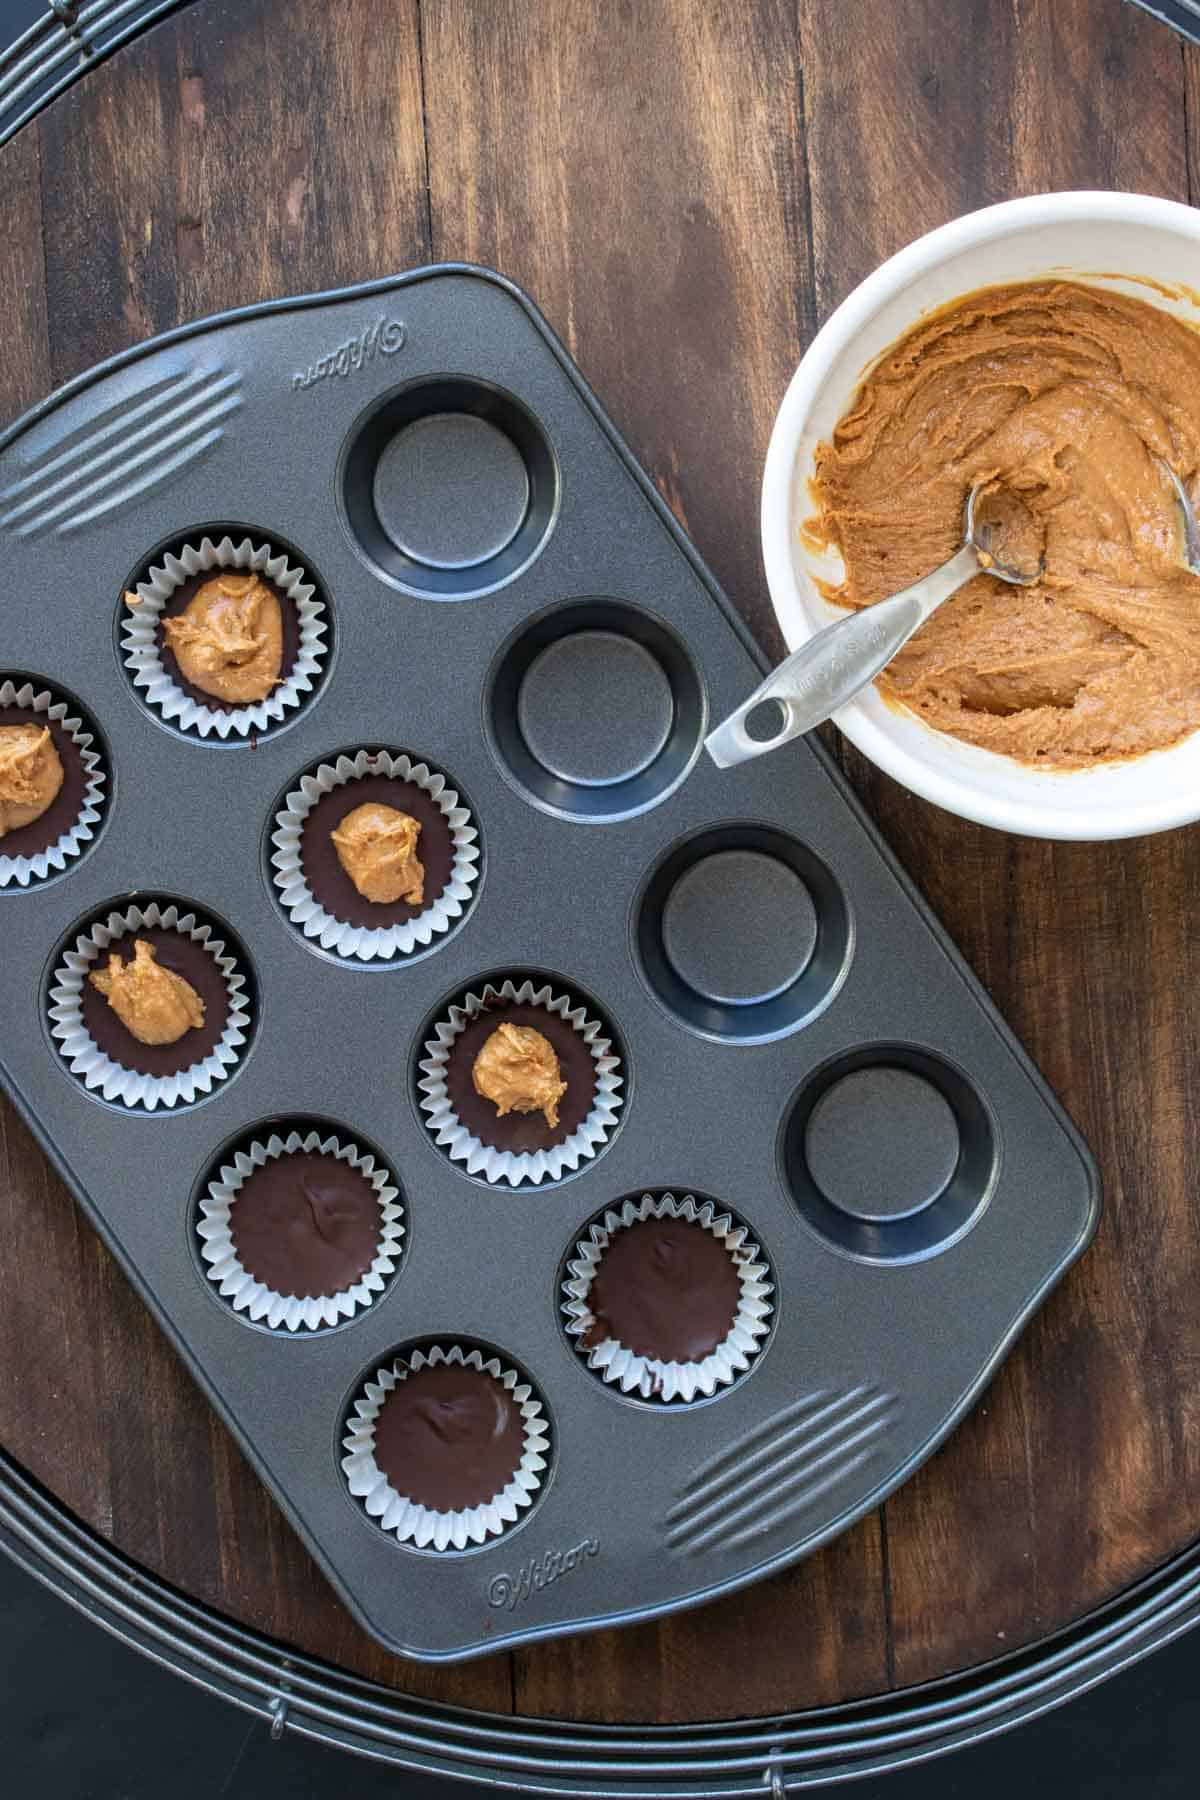 Mini muffin tin with liners filled with melted chocolate and peanut butter